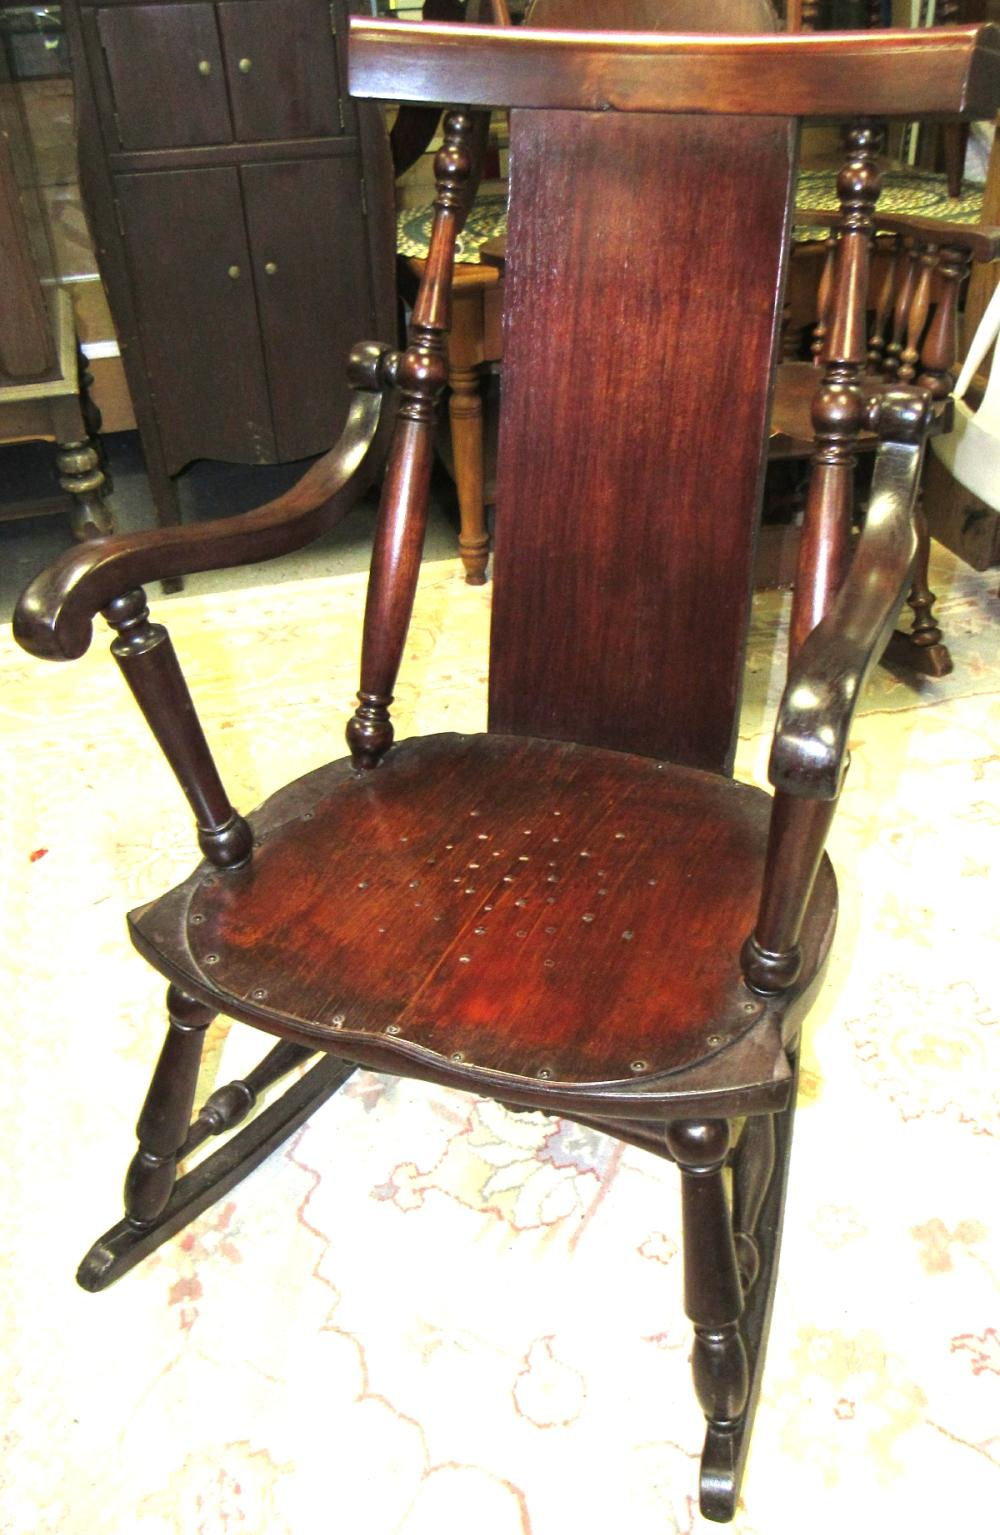 Antique Rocker with Arms, All Responsibility for Shipping will be the Successful Bidder. You must arrange for pickup directly or by a shipper within 7 days after sale.